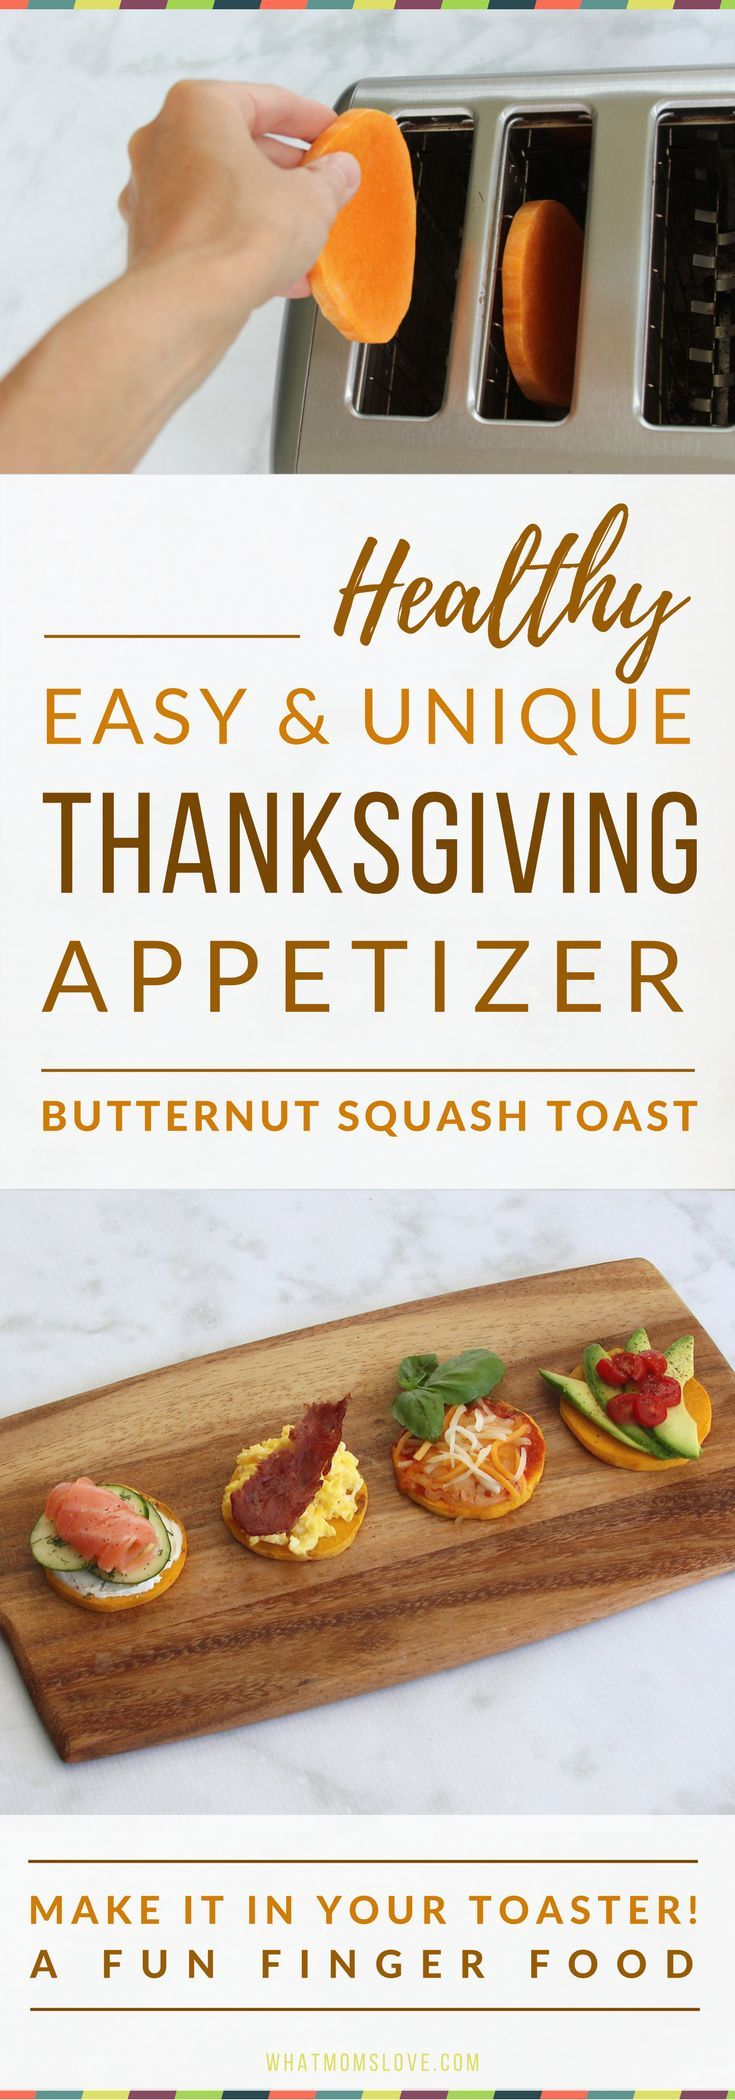 Healthy Thanksgiving Appetizer Recipe | Butternut Squash Toast | Easy Thanksgiving Appetizers | Paleo Thanksgiving | Gluten-Free, Vegan & Whole 30 | Best Thanksgiving Finger Foods | From What Moms Love